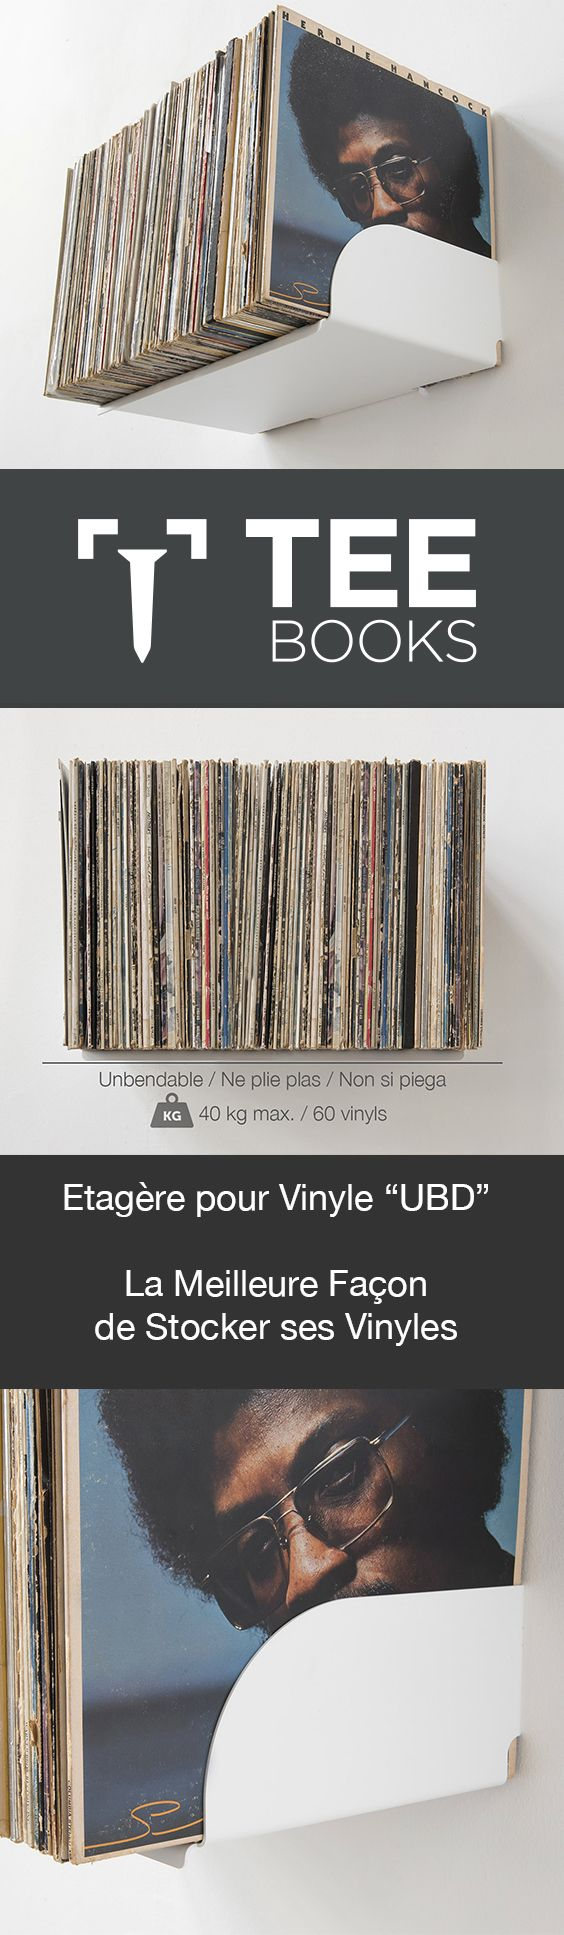 les 25 meilleures id es de la cat gorie disques vinyles sur pinterest d cor de disques vinyle. Black Bedroom Furniture Sets. Home Design Ideas